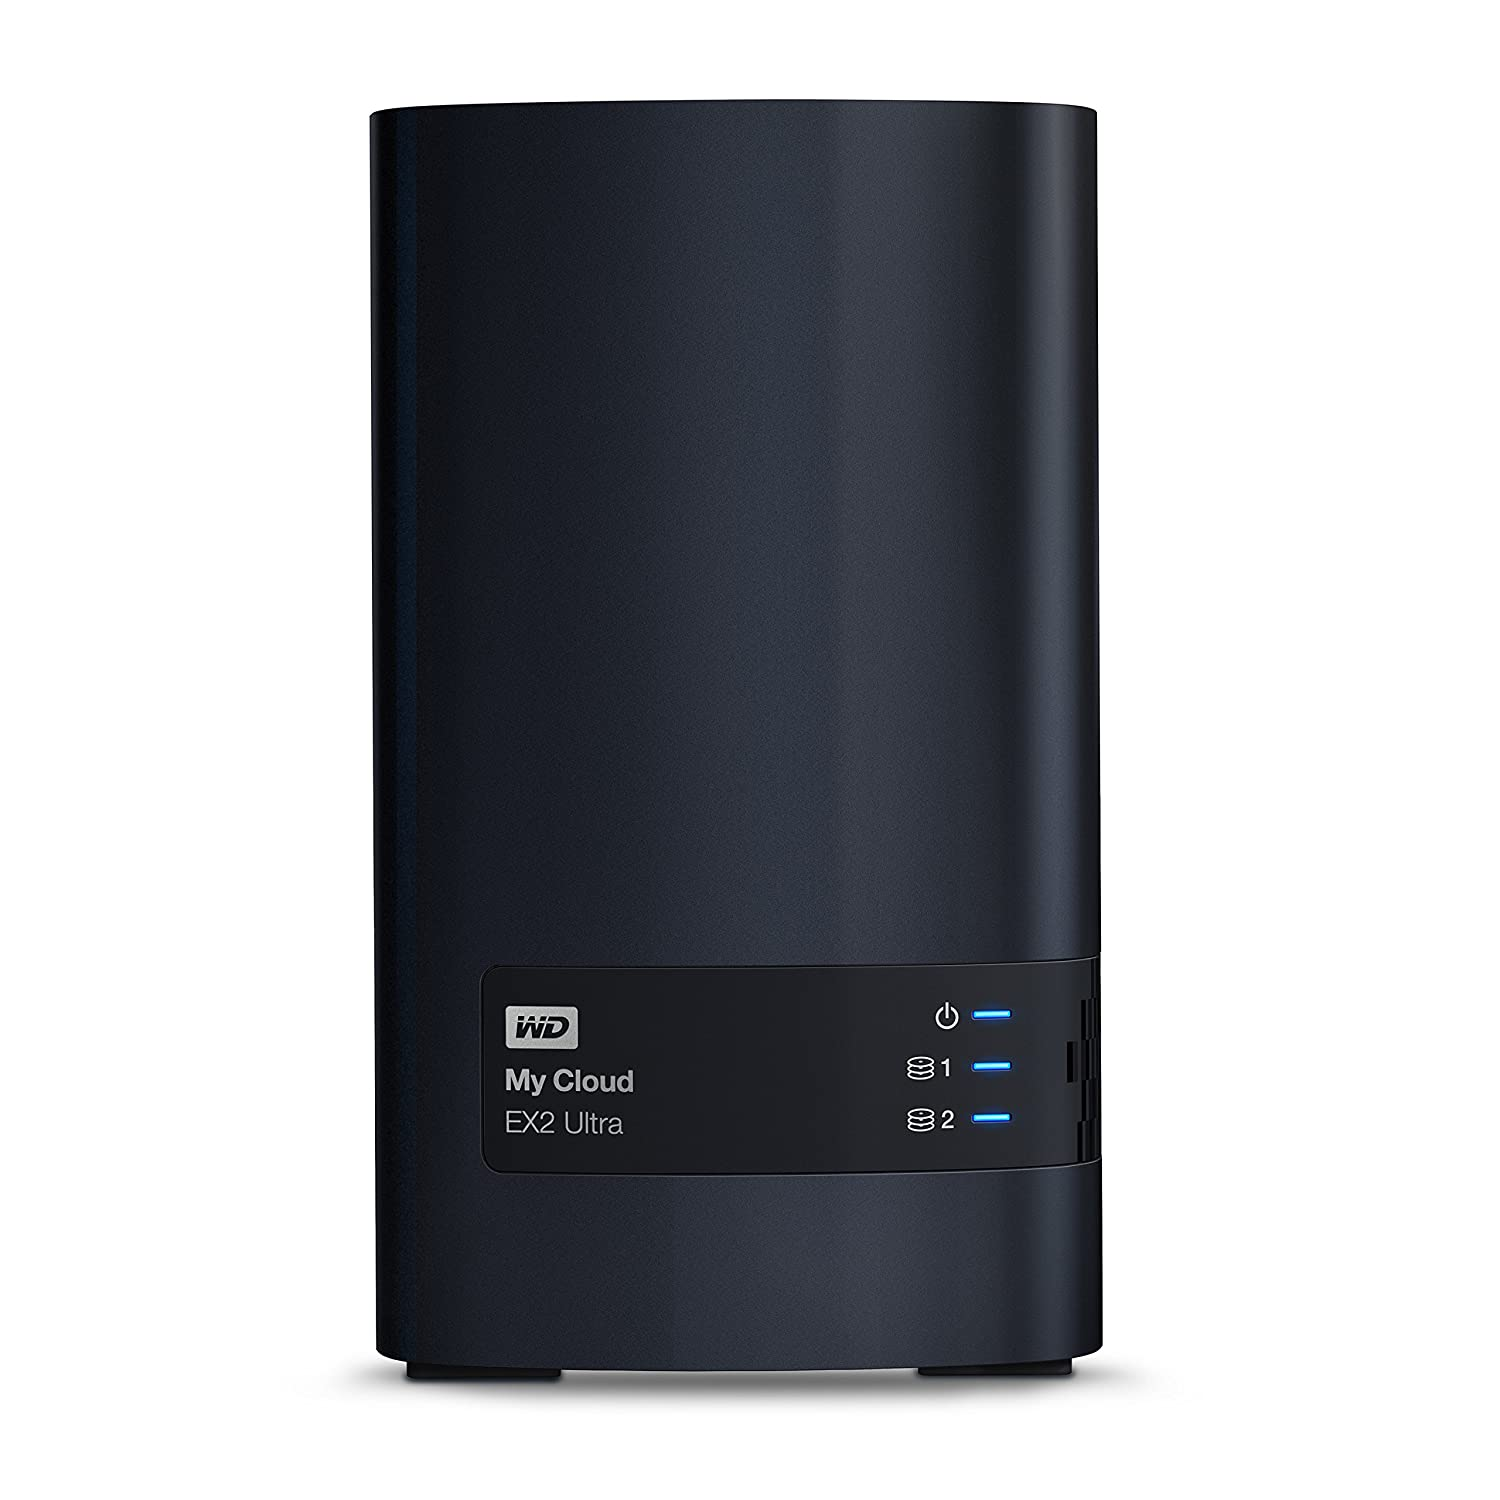 Western Digital My Cloud EX2 Ultra NAS Escritorio Ethernet Negro - Unidad Raid (6000 GB, Unidad de Disco Duro, Unidad de Disco Duro, Serial ATA III, 3000 GB, 2.5/3.5